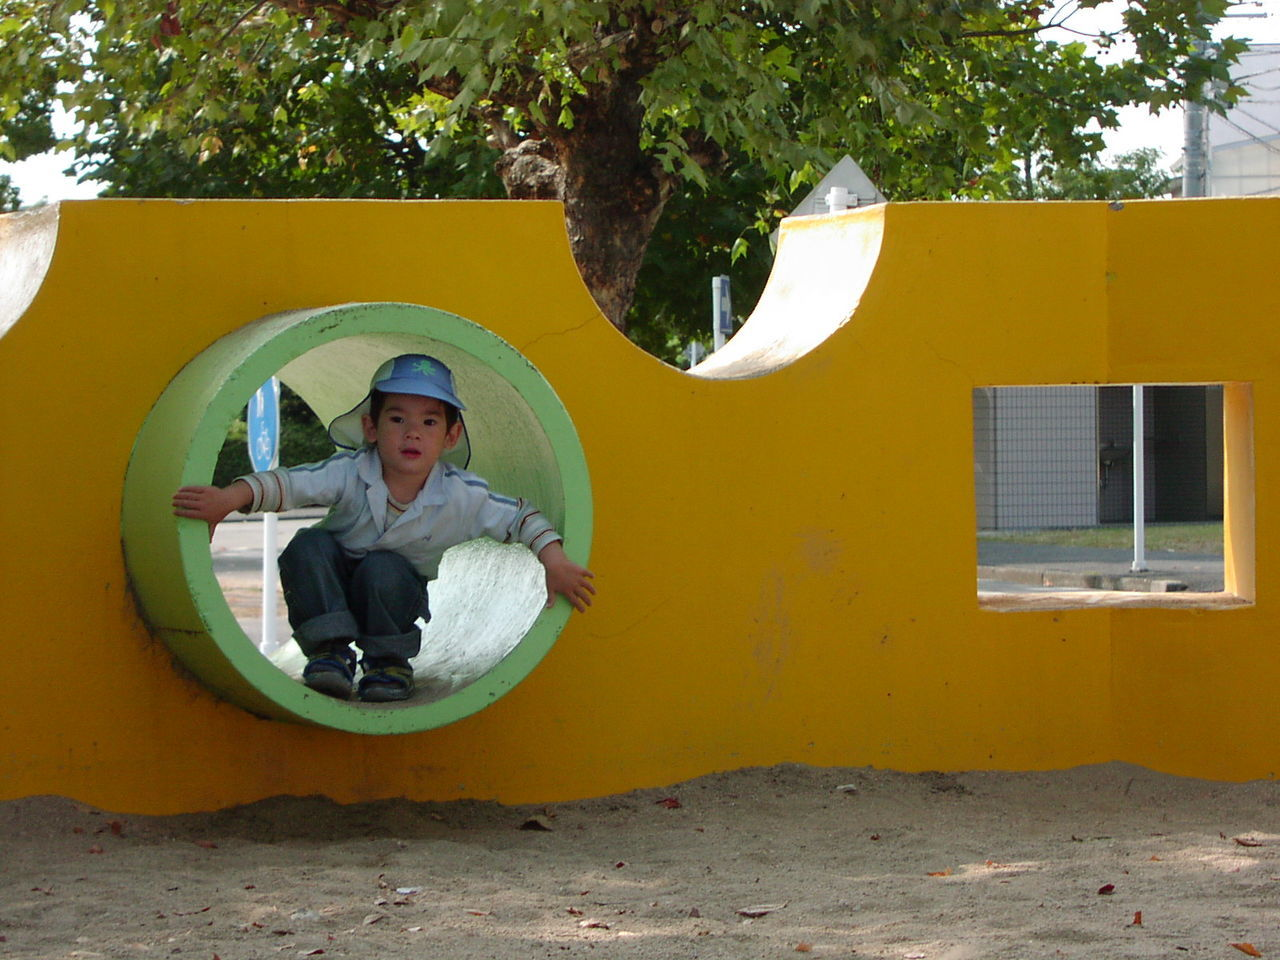 Child's play Front View Happy Kid Having Fun One Child Outdoors Park Peeping Through Play Playground Playground Fun Playgrounds Playing Slide - Play Equipment ın The Park